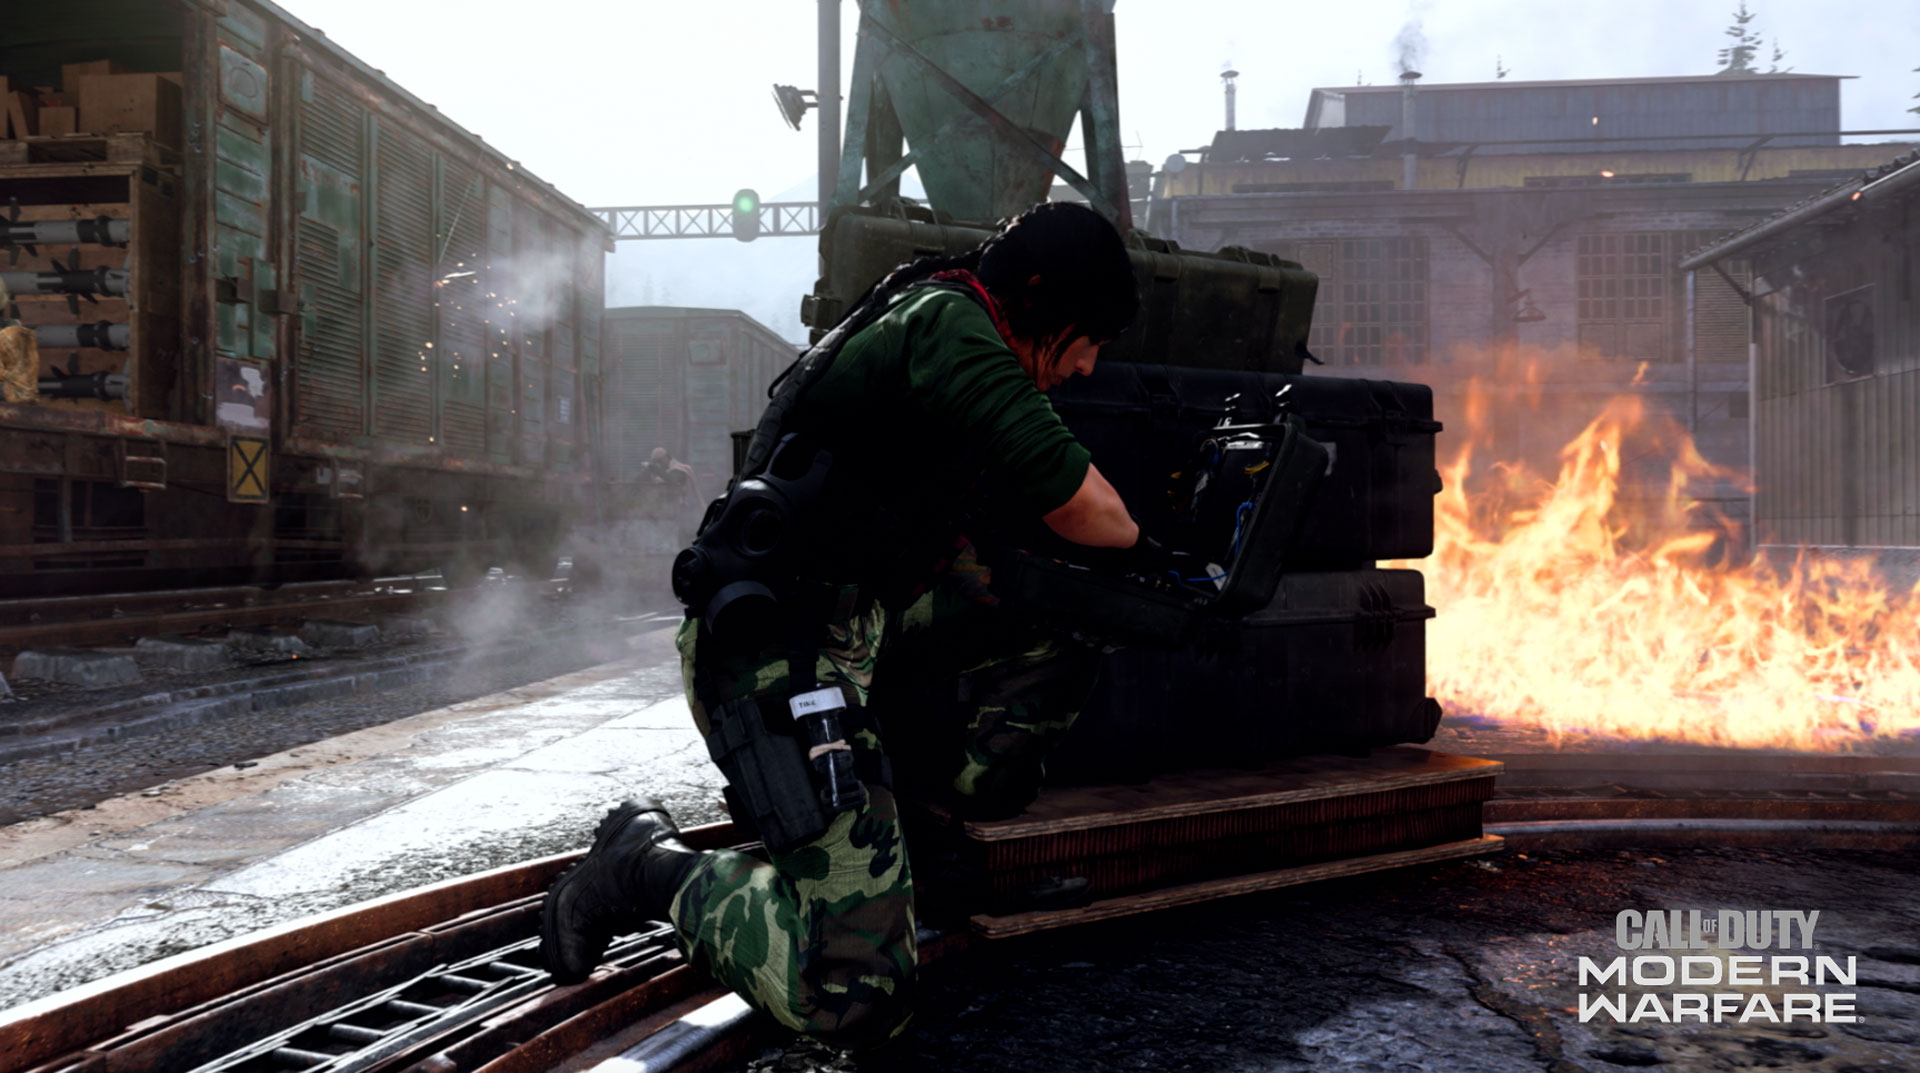 Player defusing bomb in Modern Warfare.